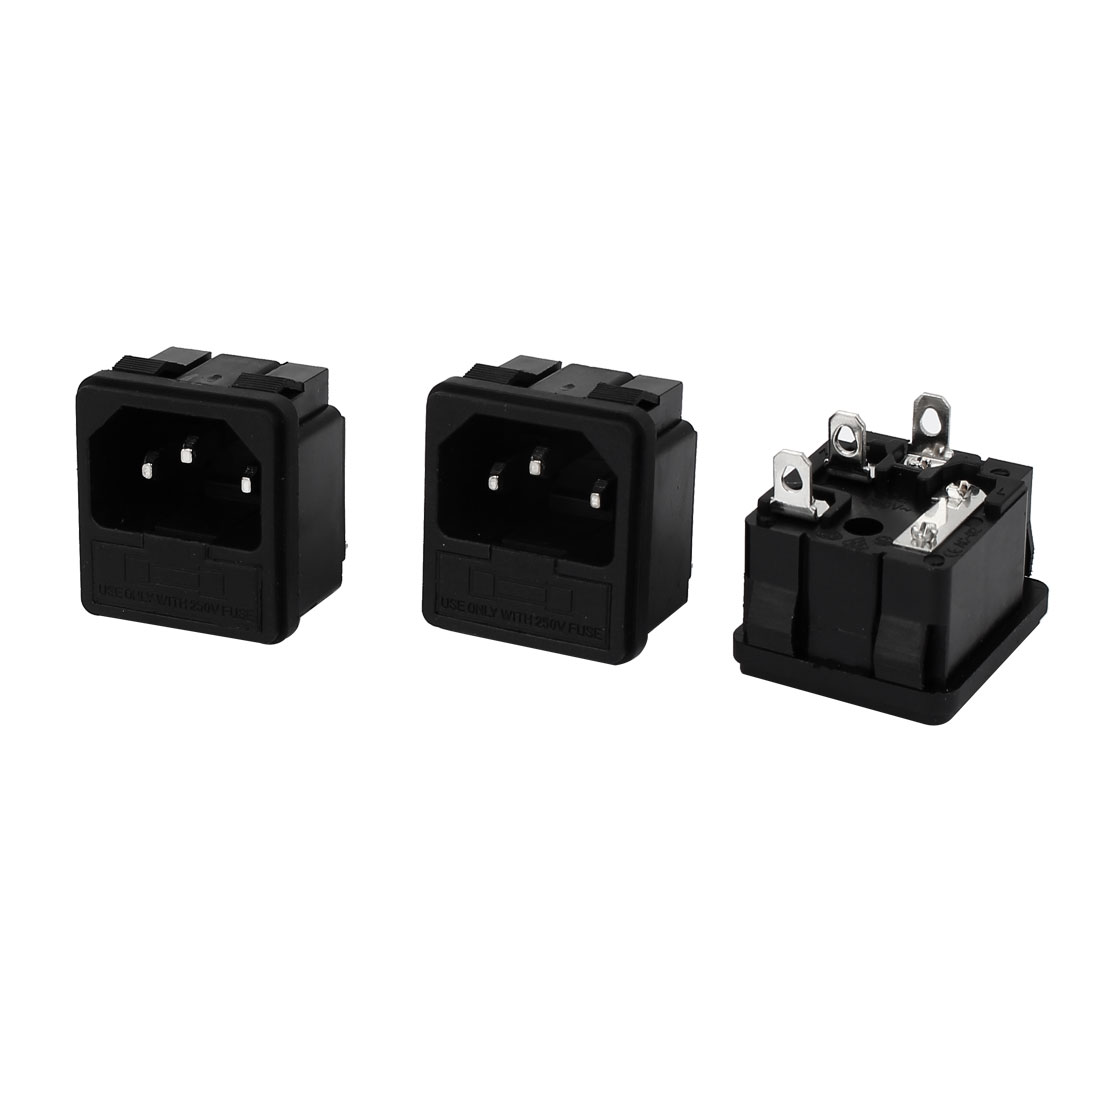 3 Pcs AC 250V 10A Pannel Mounted 3 Terminals IEC 320 C14 Male Plug Inlet Power Socket Black